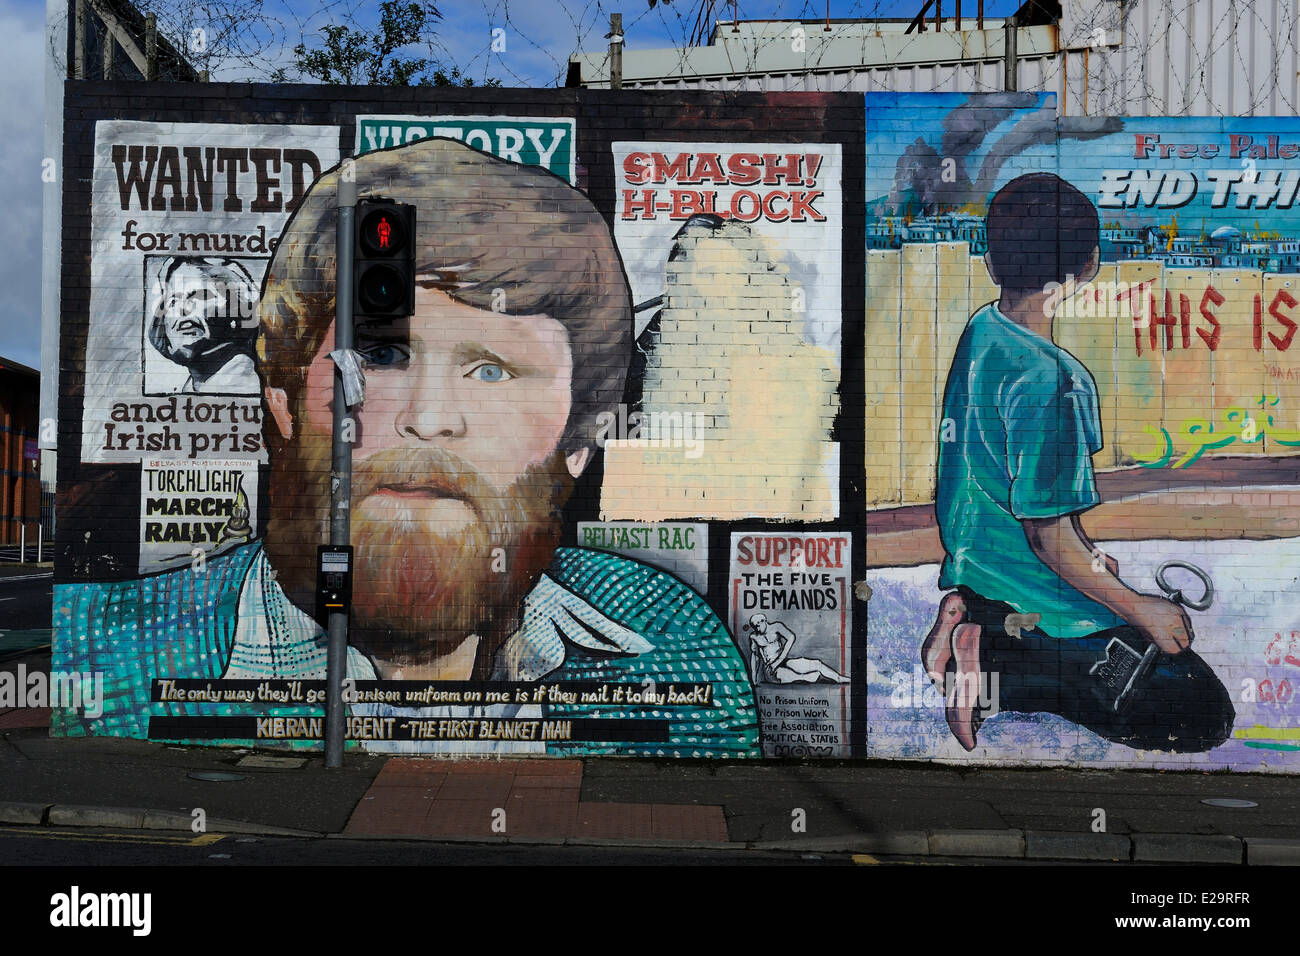 United Kingdom, Northern Ireland, West Belfast, Catholic Falls area, International or Solidarity Wall, murals on - Stock Image